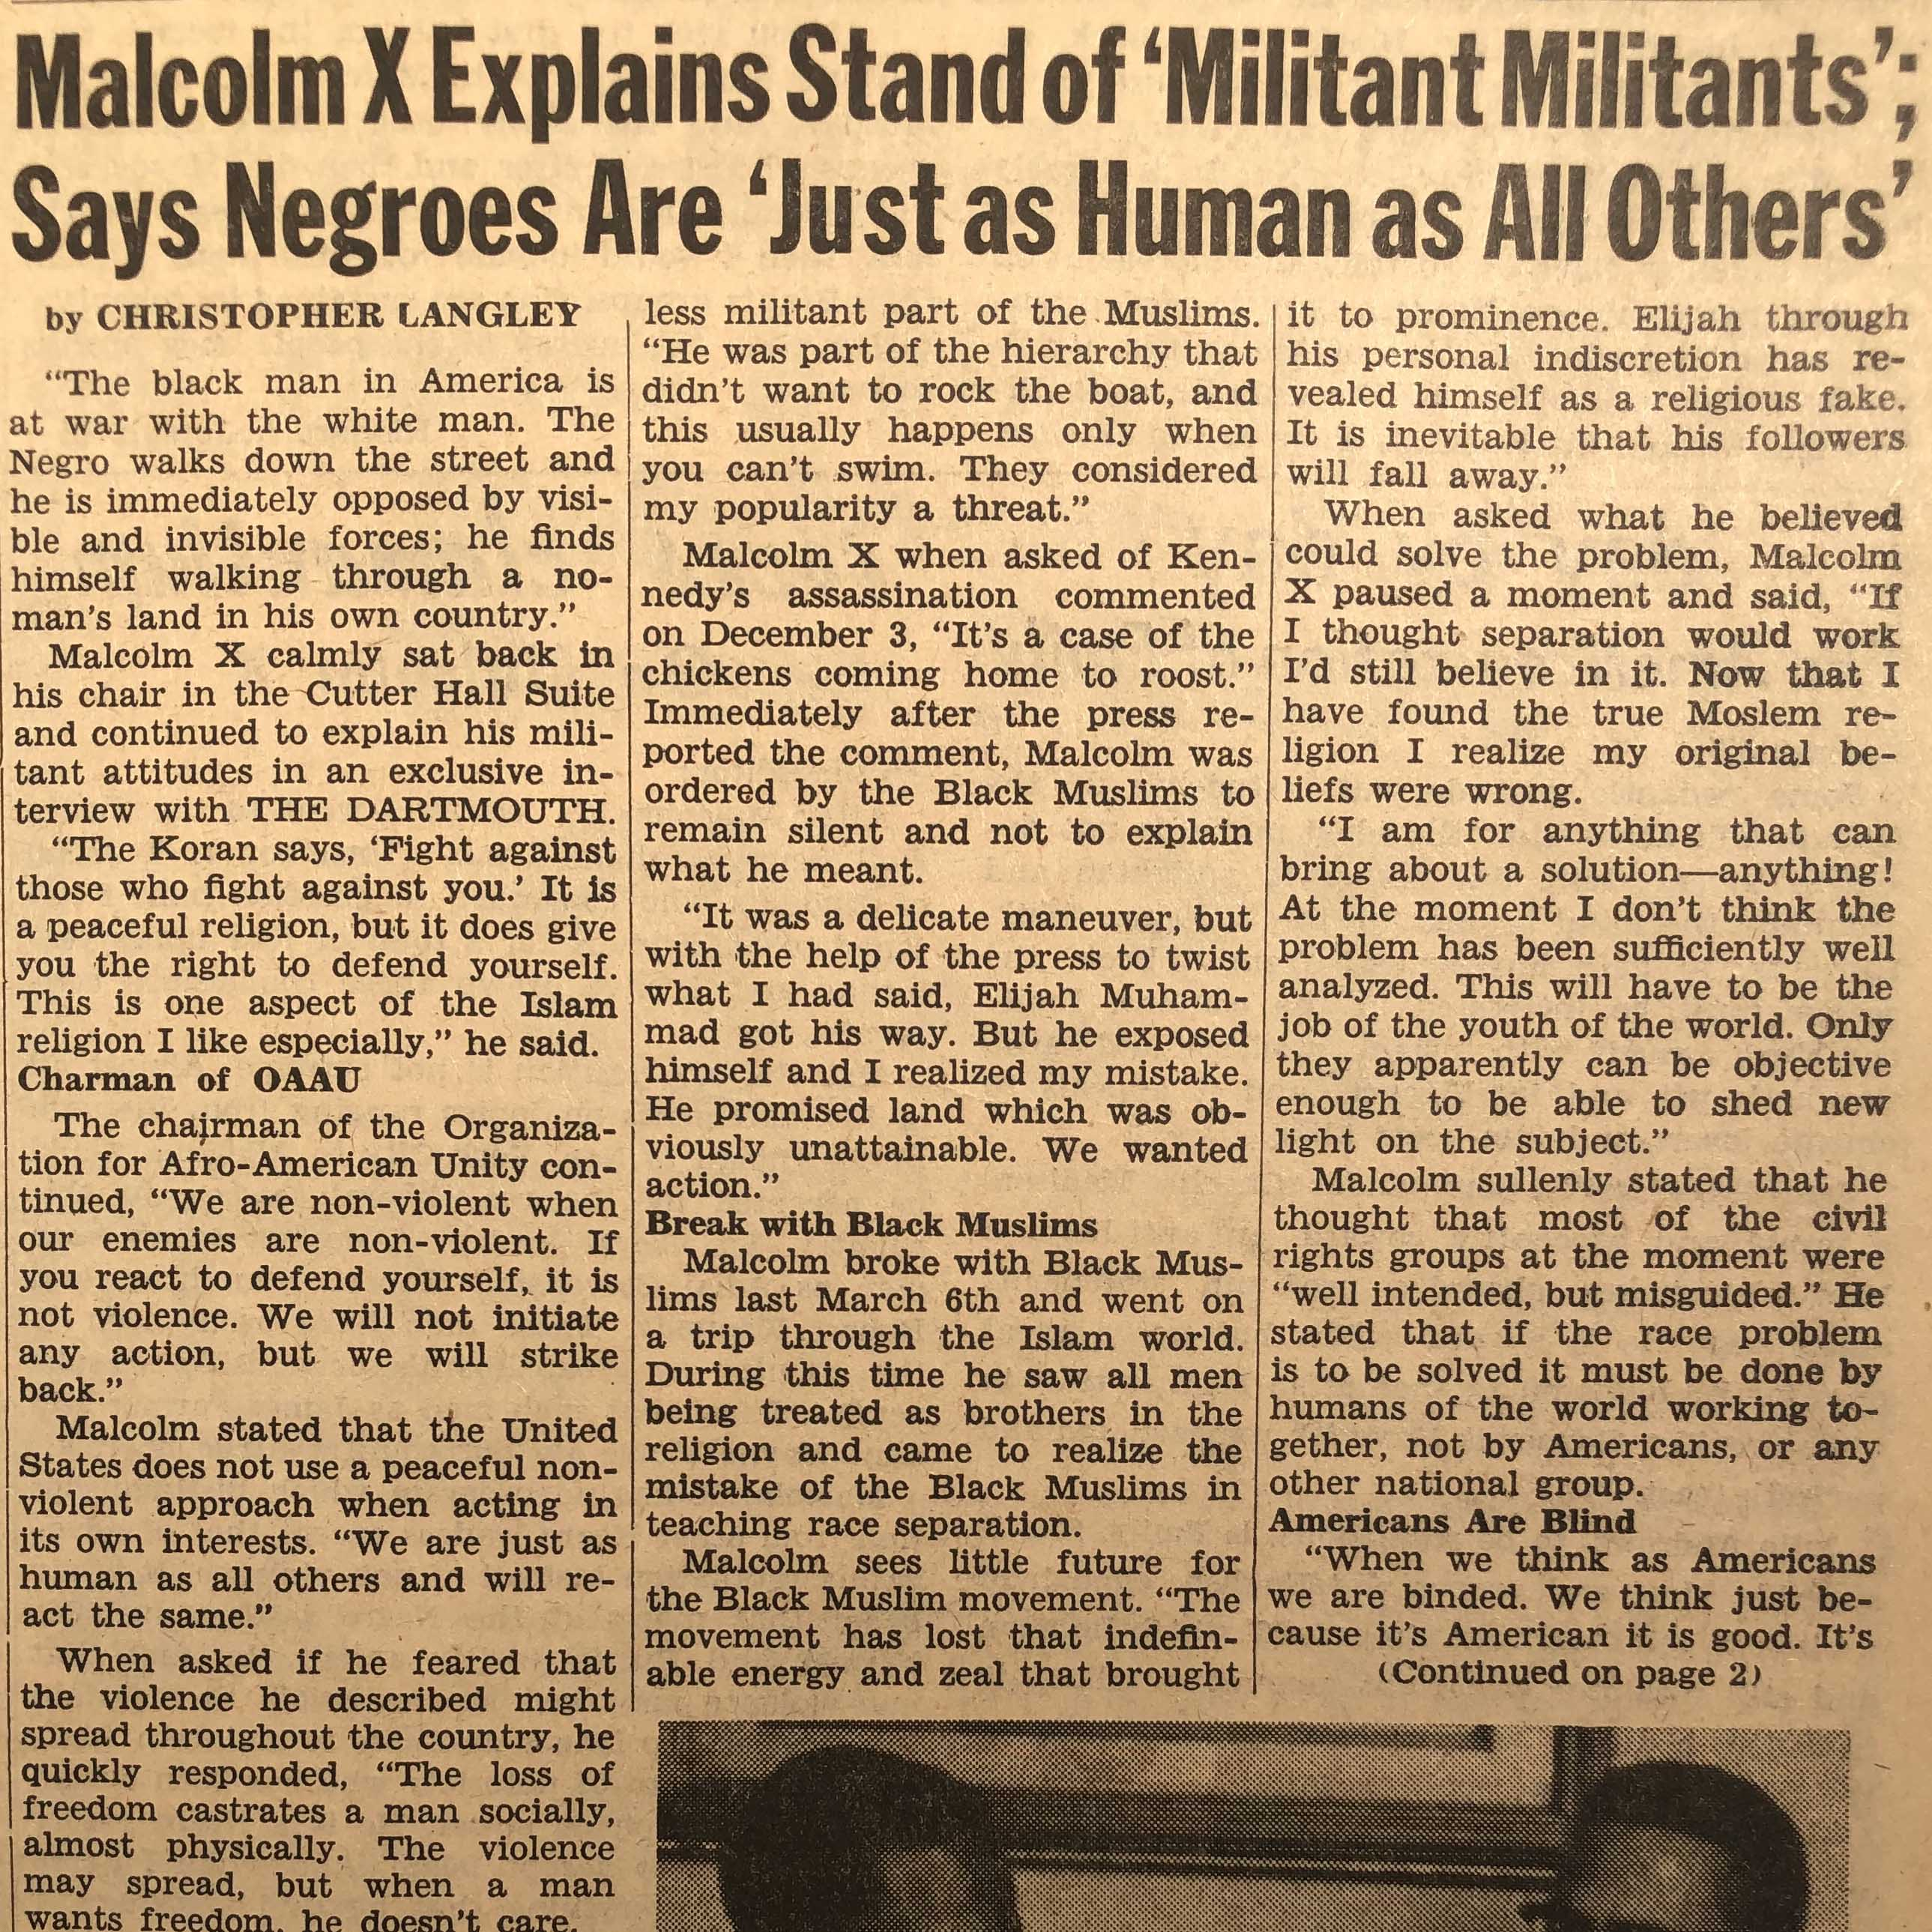 """In this exclusive interview for Dartmouth's student newspaper, Malcolm X explains the inspiration he derives from his Muslim faith, why he broke with the Black Muslim movement, why he believes American Civil Rights groups are """"well intentioned, but misguided,"""" and his work with the Organization for Afro-American Unity."""